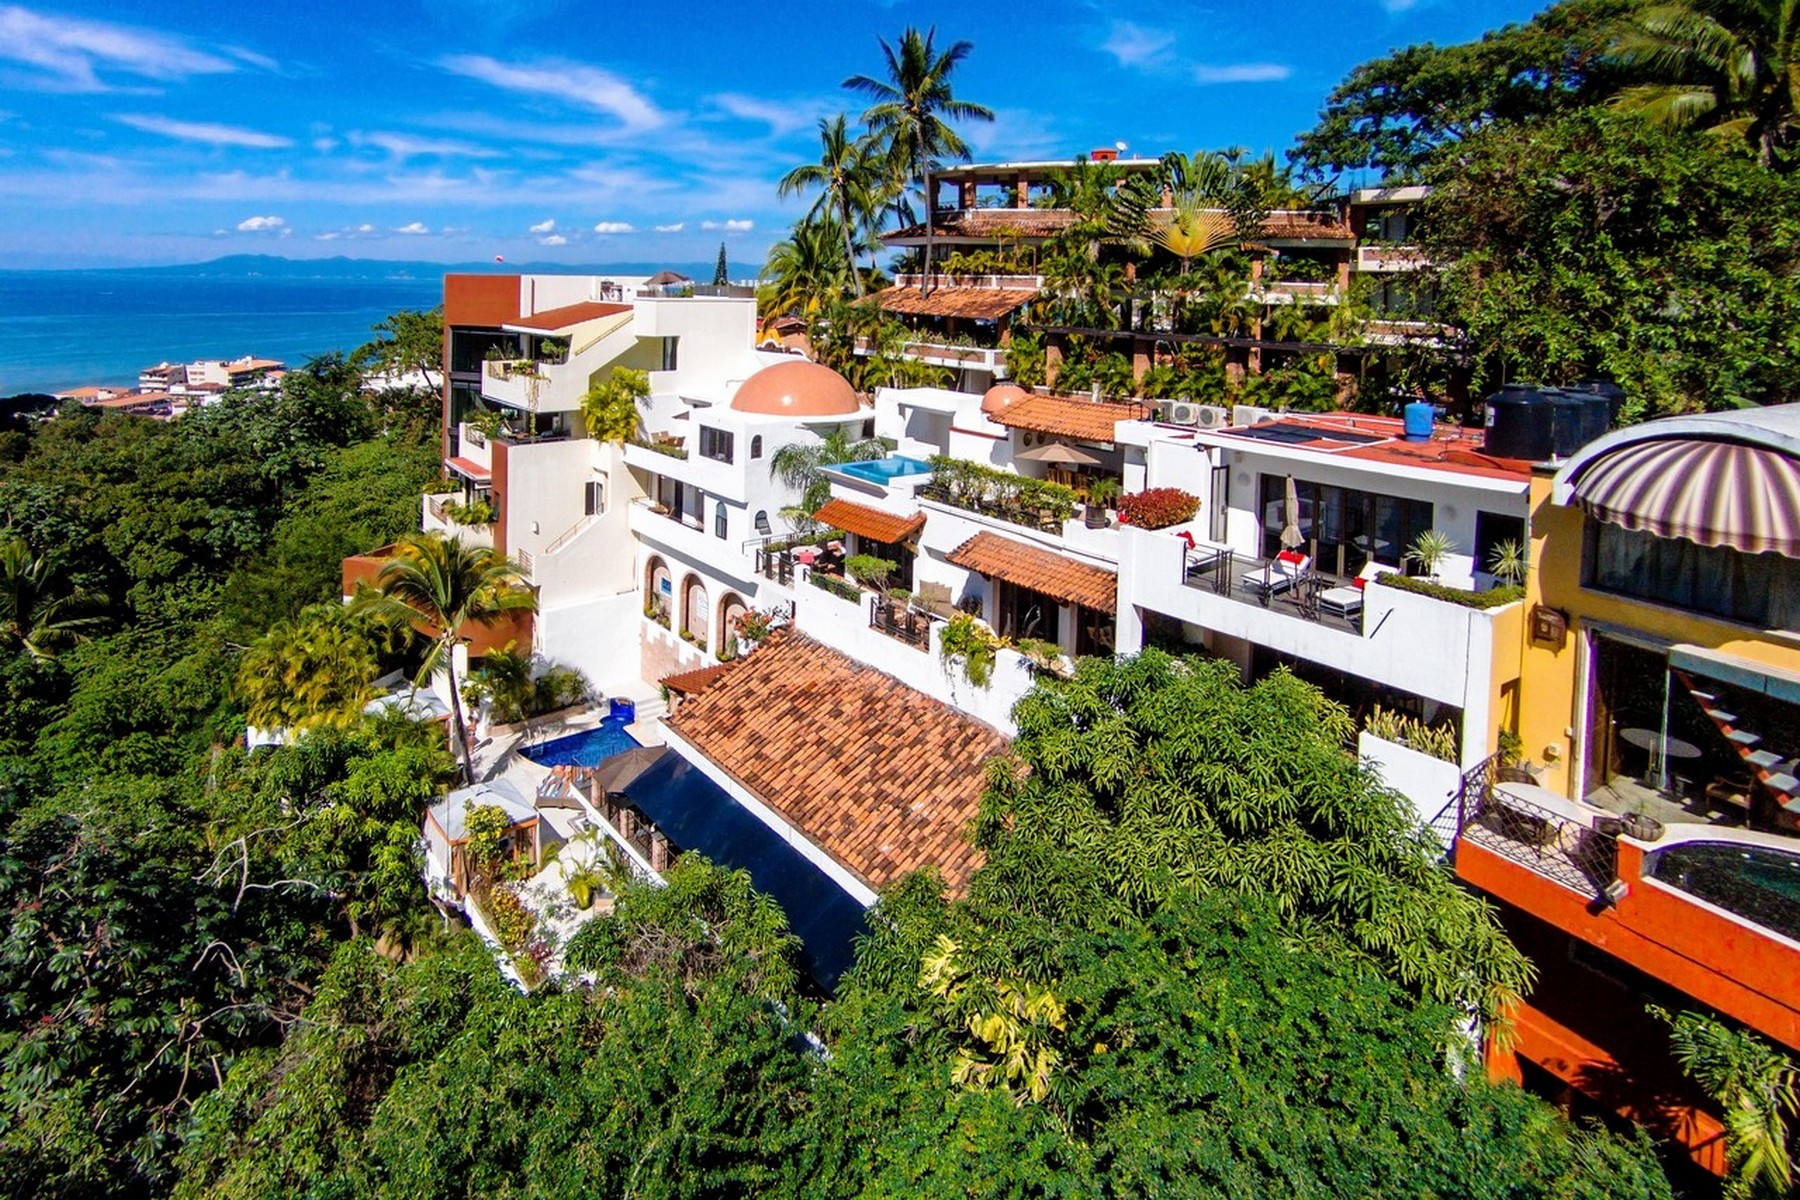 Single Family Home for Sale at Boutique hotel in Las Amapas Puerto Vallarta, Jalisco 48399 Mexico